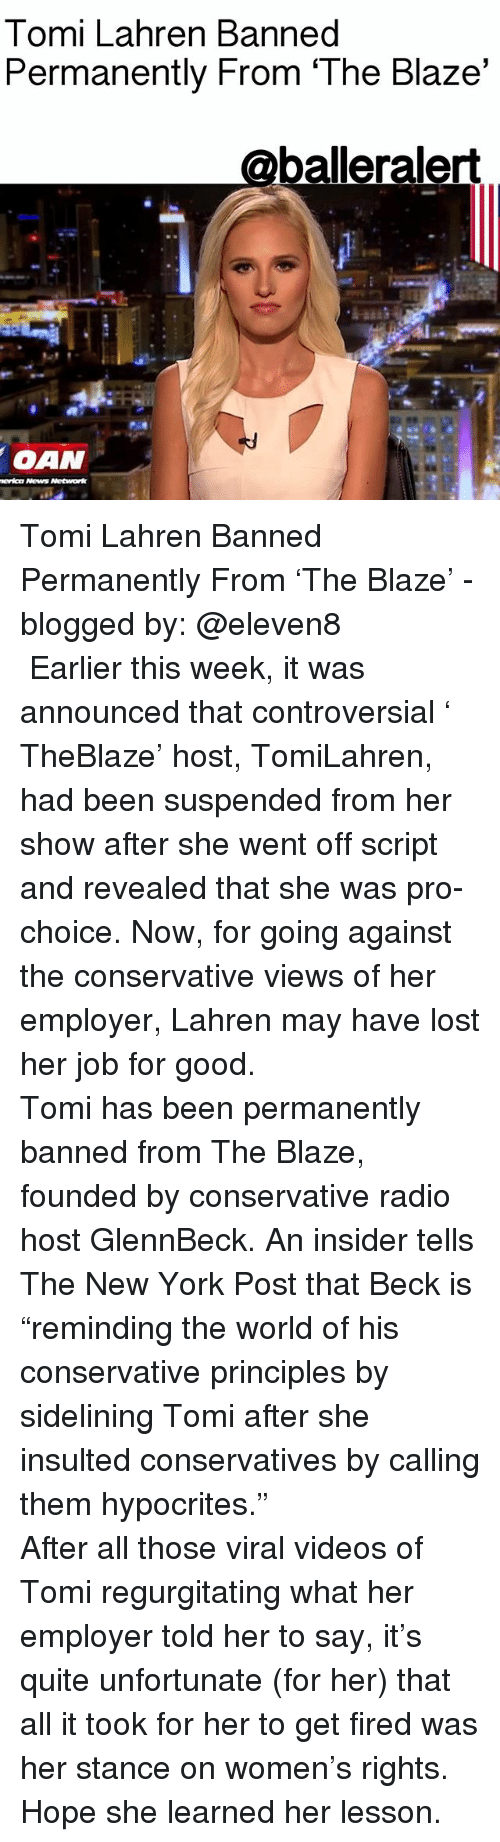 "Oan: Tomi Lahren Banned  Permanently From 'The Blaze'  balleralert  OAN  Network Tomi Lahren Banned Permanently From 'The Blaze' - blogged by: @eleven8 ⠀⠀⠀⠀⠀⠀⠀⠀⠀ ⠀⠀⠀⠀⠀⠀⠀⠀⠀ Earlier this week, it was announced that controversial ' TheBlaze' host, TomiLahren, had been suspended from her show after she went off script and revealed that she was pro-choice. Now, for going against the conservative views of her employer, Lahren may have lost her job for good. ⠀⠀⠀⠀⠀⠀⠀⠀⠀ ⠀⠀⠀⠀⠀⠀⠀⠀⠀ Tomi has been permanently banned from The Blaze, founded by conservative radio host GlennBeck. An insider tells The New York Post that Beck is ""reminding the world of his conservative principles by sidelining Tomi after she insulted conservatives by calling them hypocrites."" ⠀⠀⠀⠀⠀⠀⠀⠀⠀ ⠀⠀⠀⠀⠀⠀⠀⠀⠀ After all those viral videos of Tomi regurgitating what her employer told her to say, it's quite unfortunate (for her) that all it took for her to get fired was her stance on women's rights. Hope she learned her lesson."